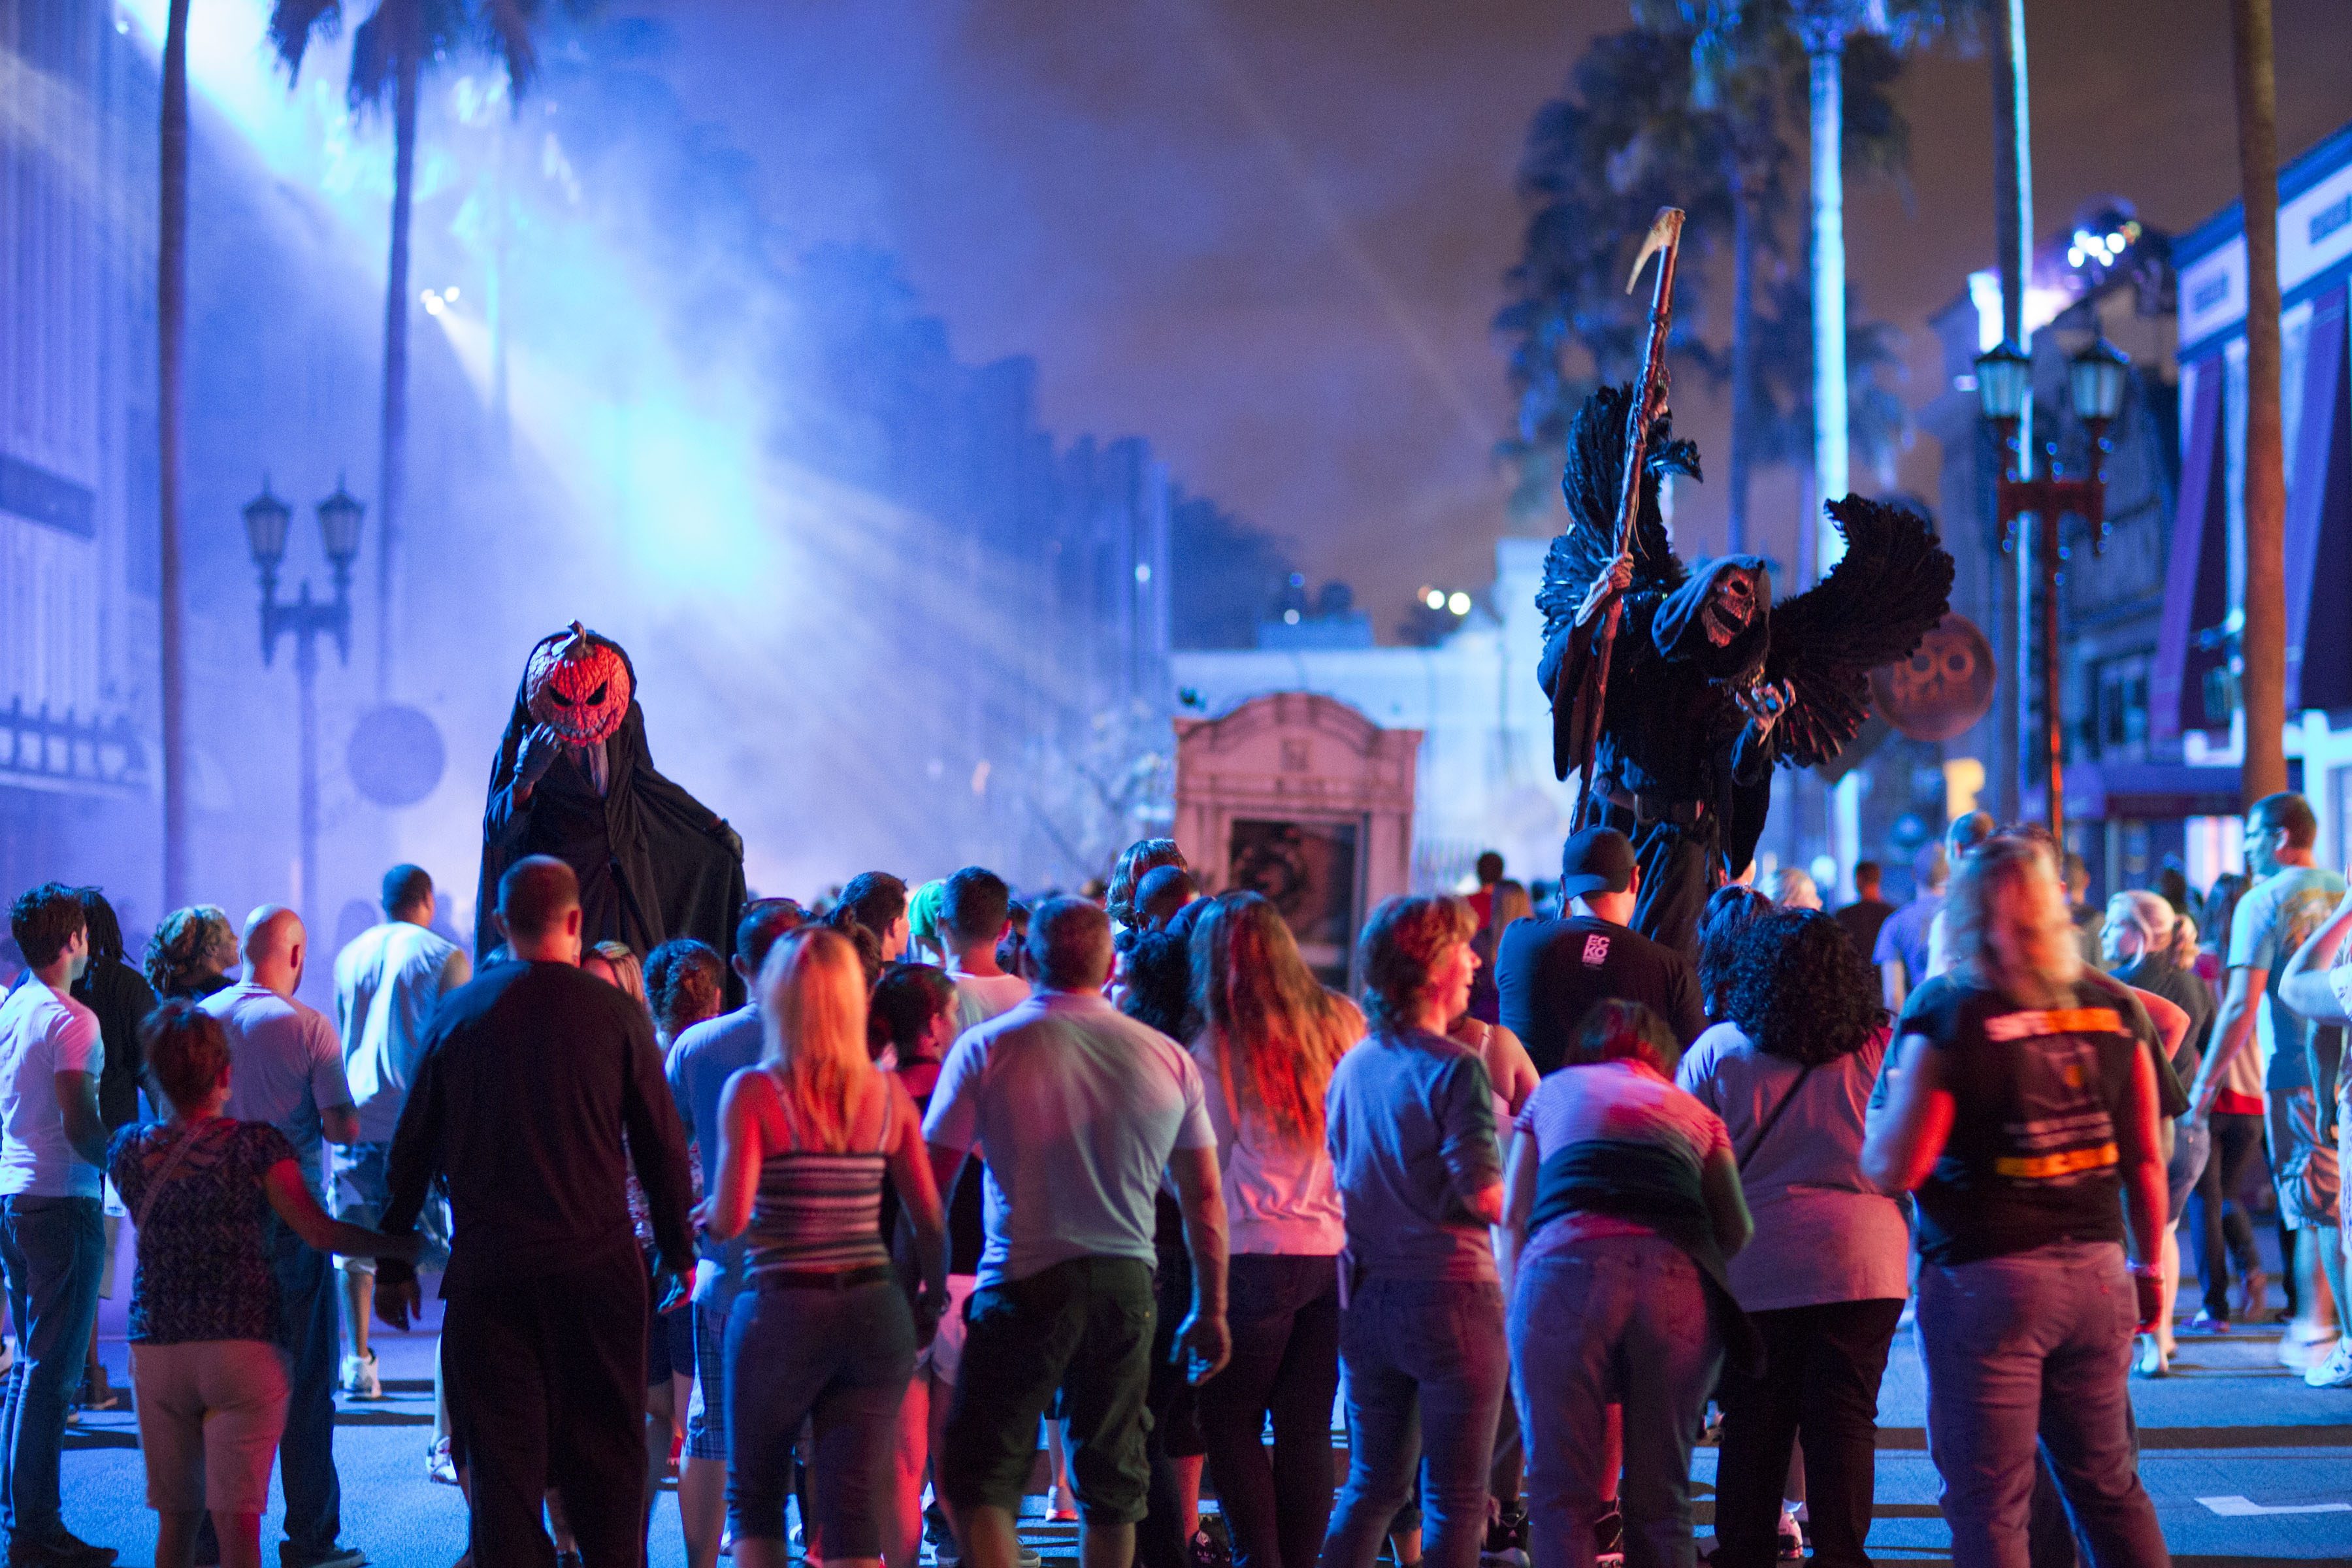 halloween horror nights archives - page 2 of 2 - kingdom magic vacations